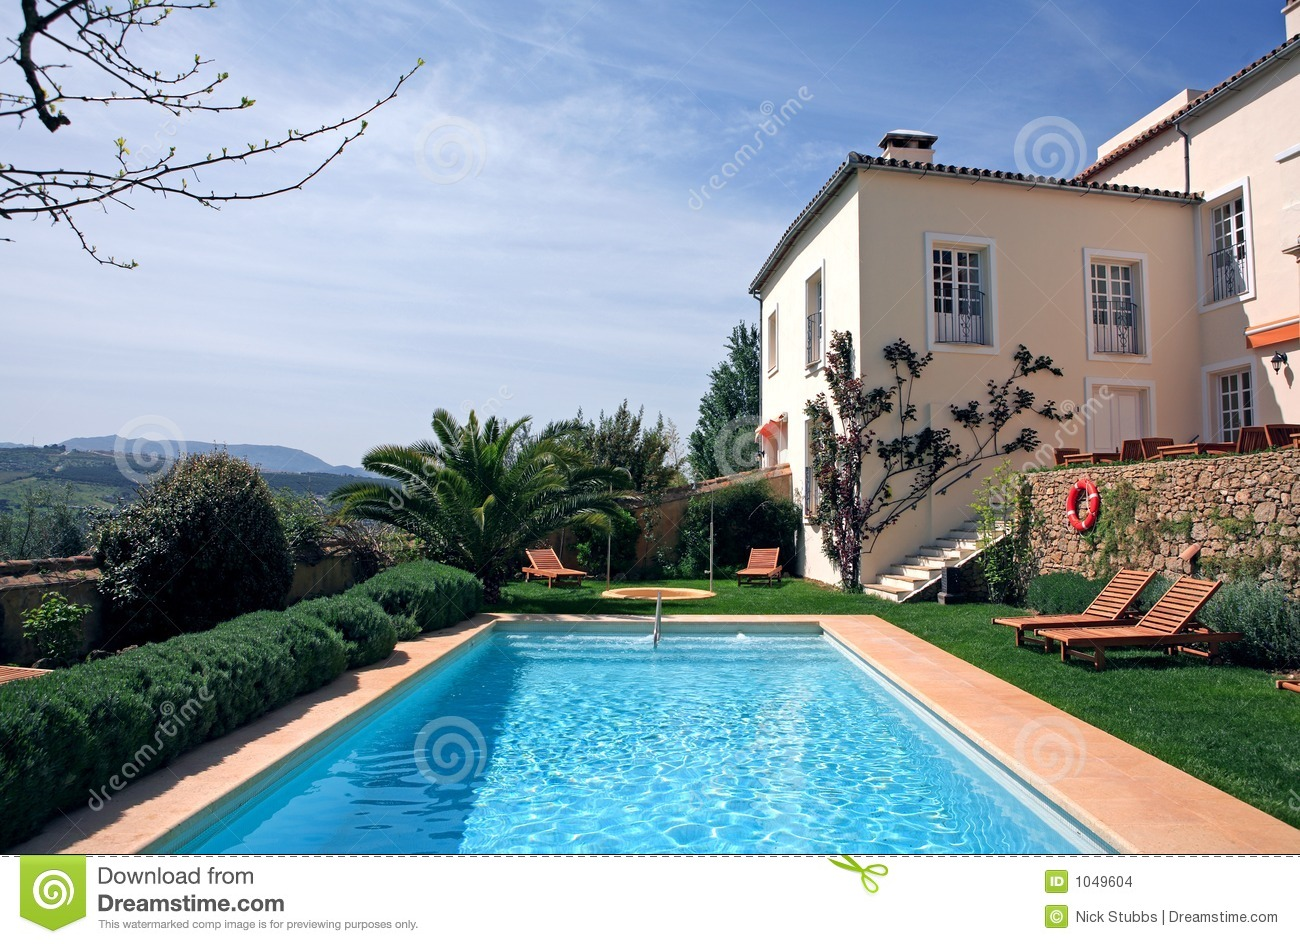 Luxury Rustic Hotel And Swimming Pool Stock Images - Image: 1049604